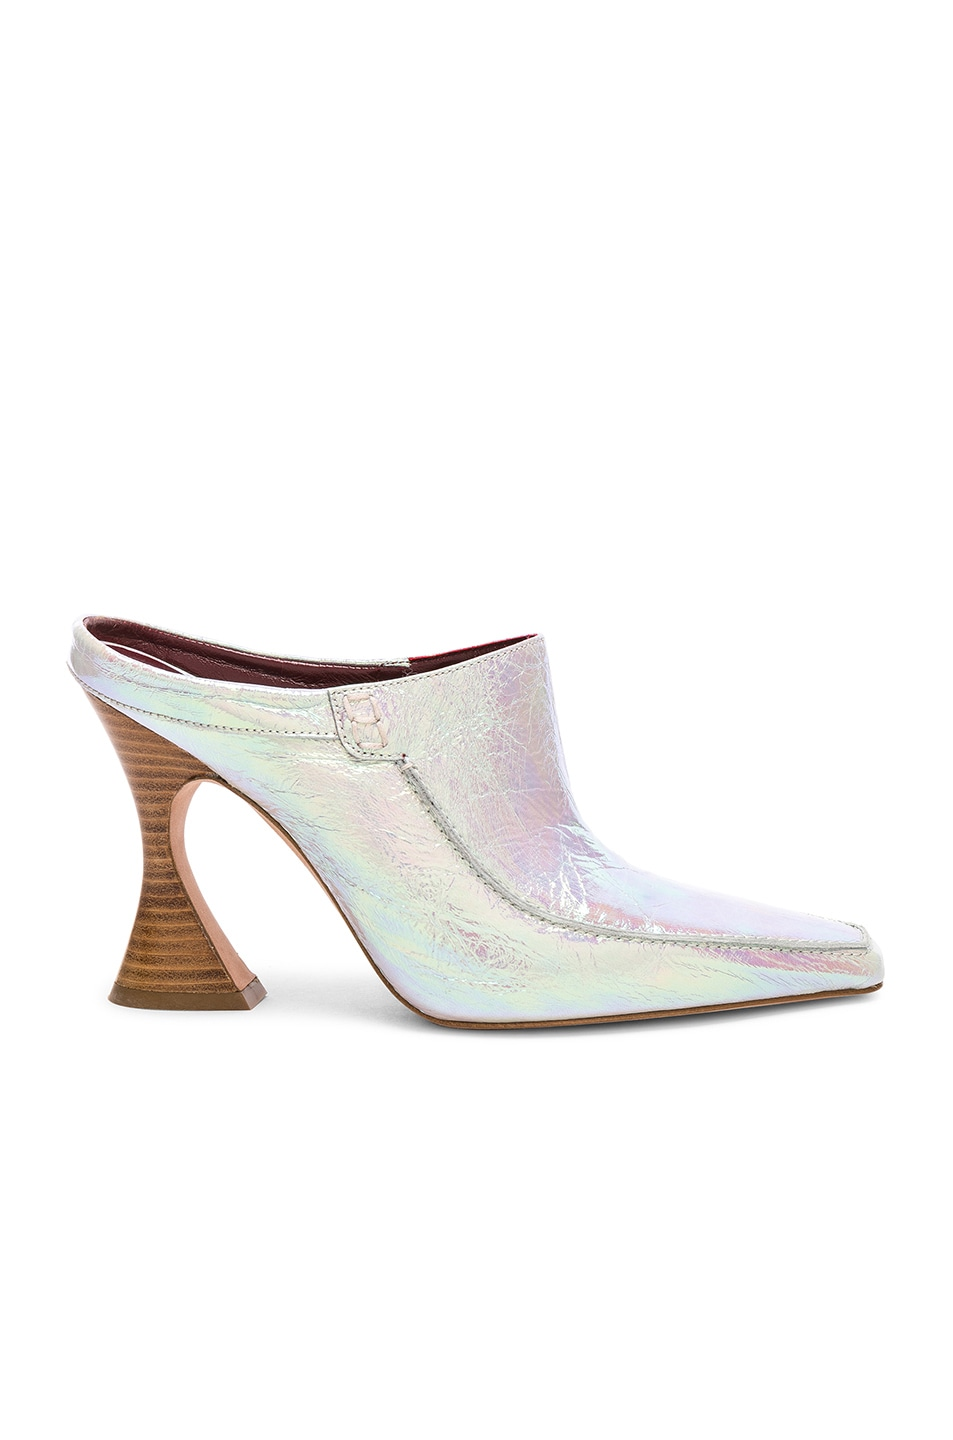 Image 1 of Sies Marjan Dena Holographic Loafer in Multicolored